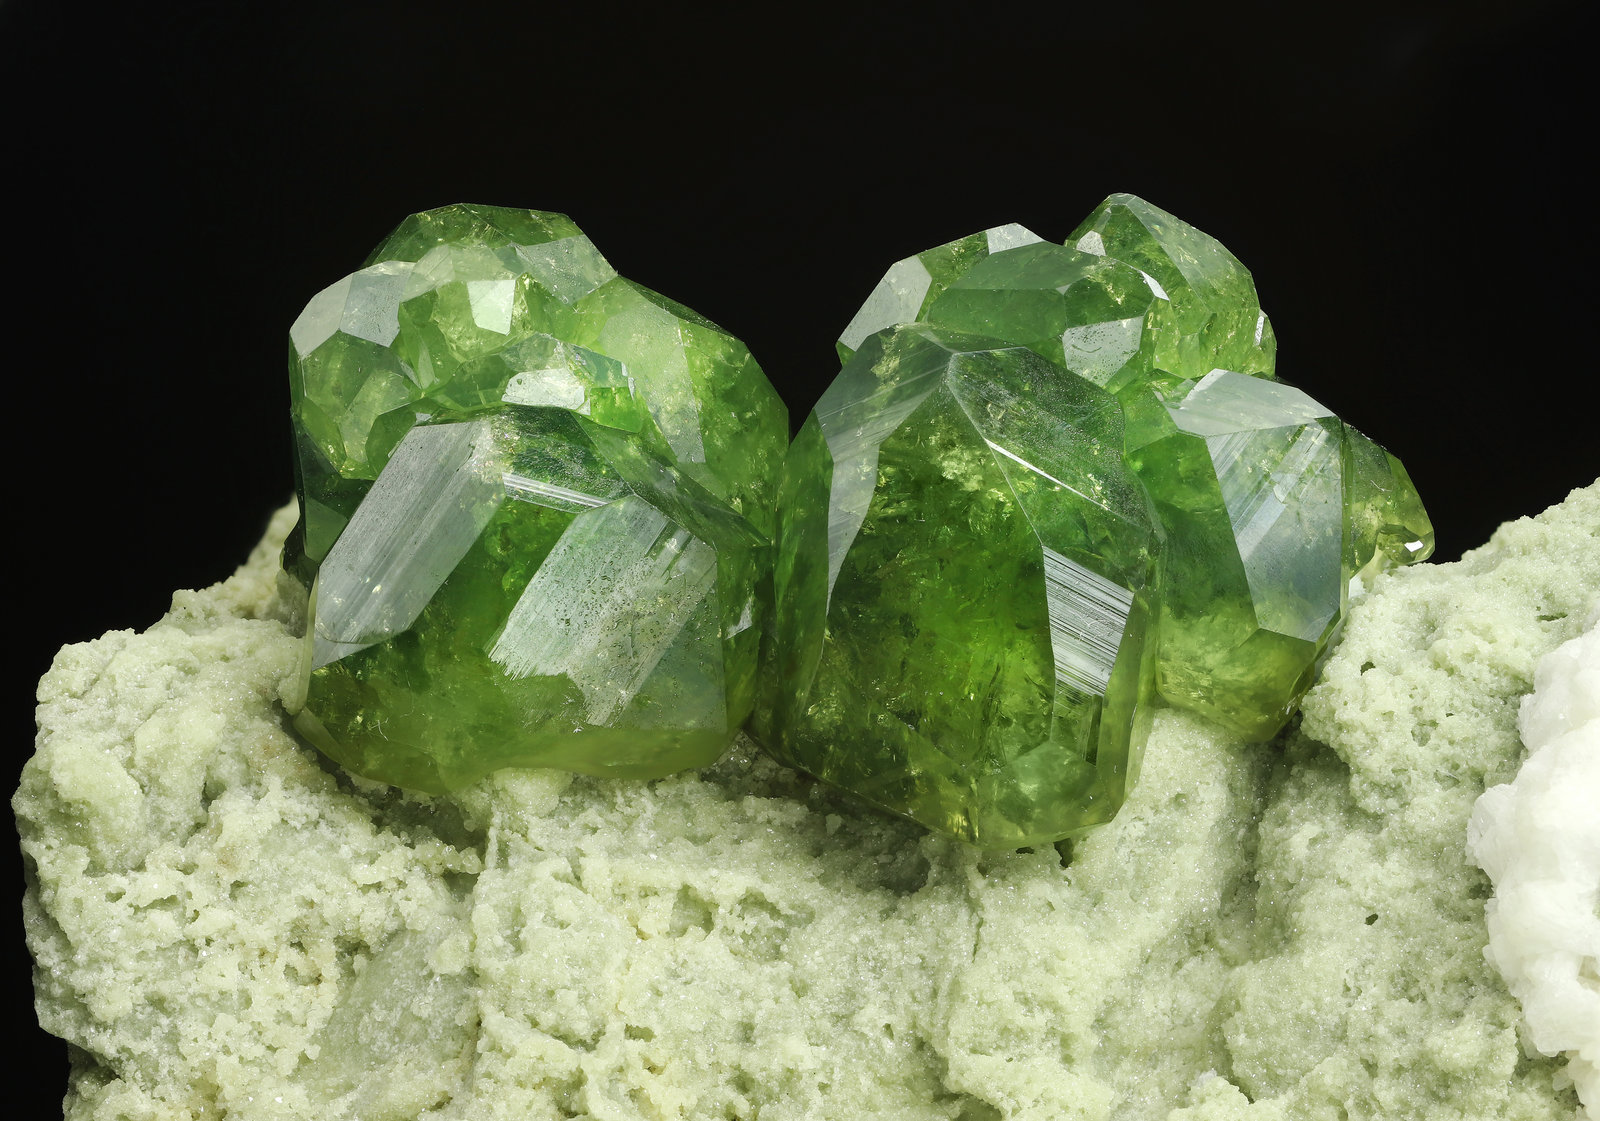 specimens/s_imagesAL7/Andradite_demantoid-MA27AL7_0877_d.jpg